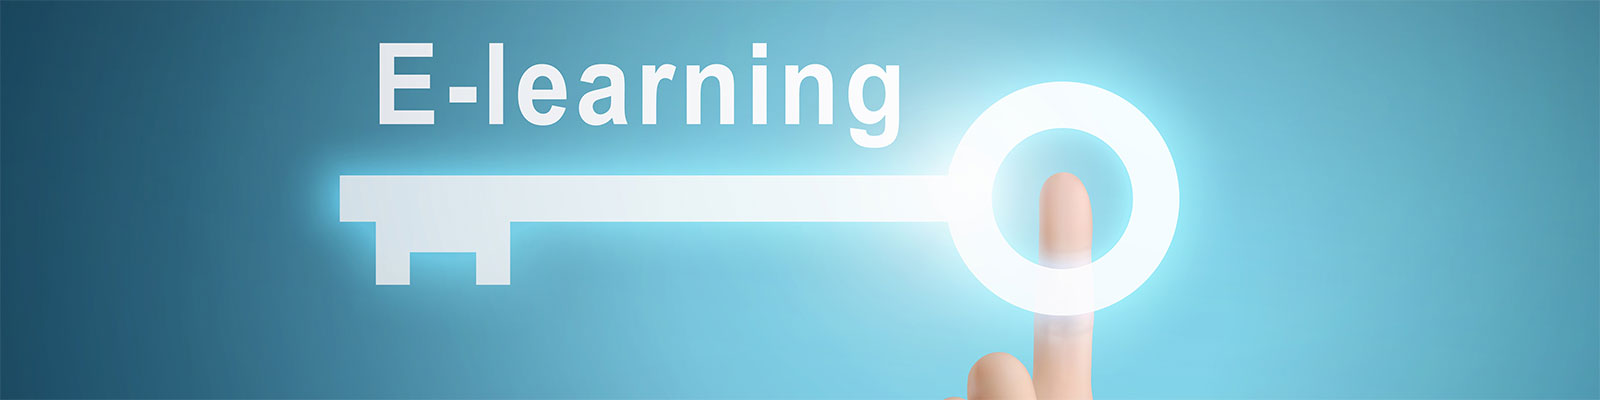 e-Learning for B2B Sales | Fast and Affordable Training